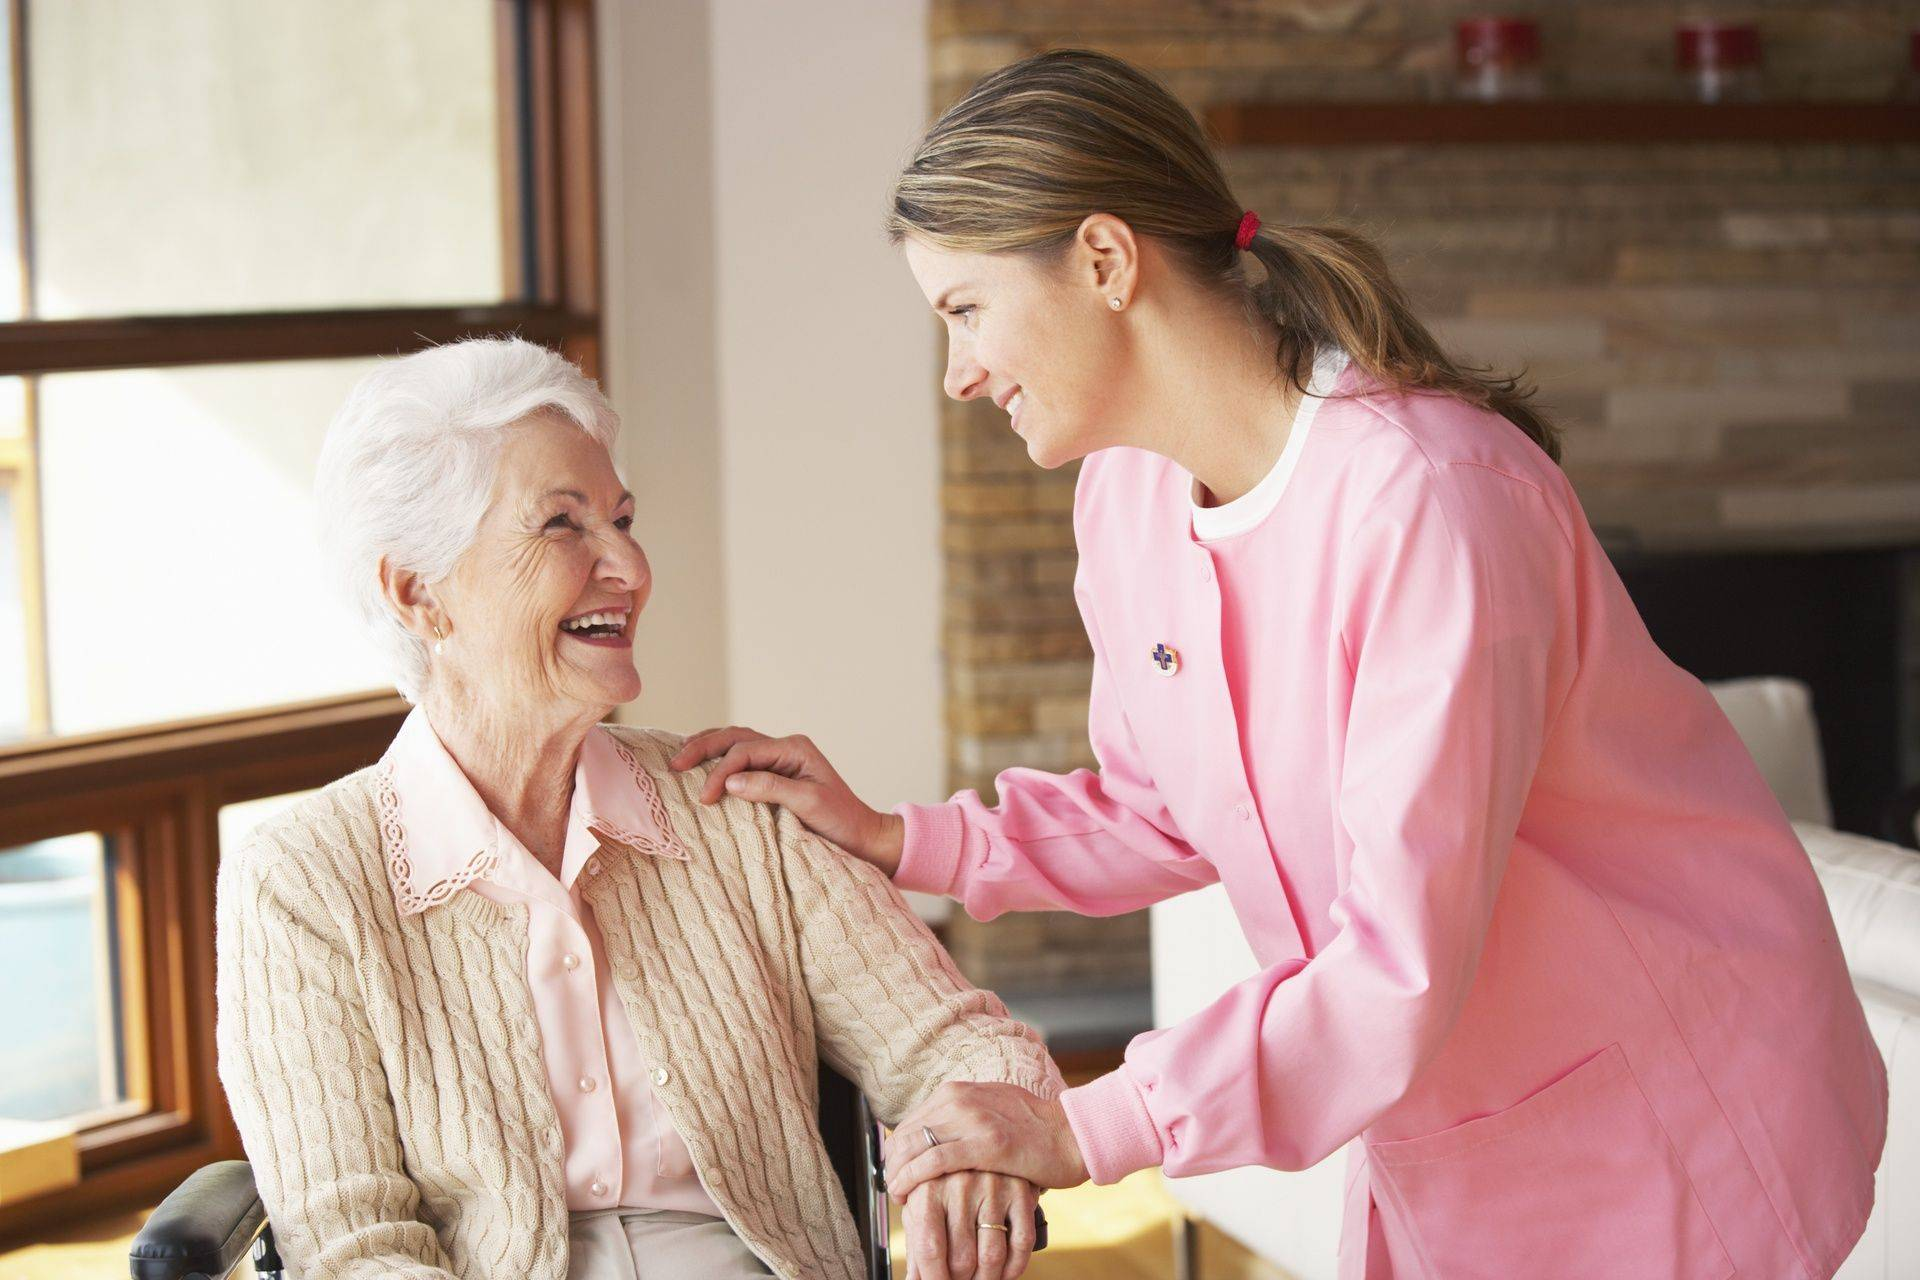 Nurse assisting the elderly lady, companion care